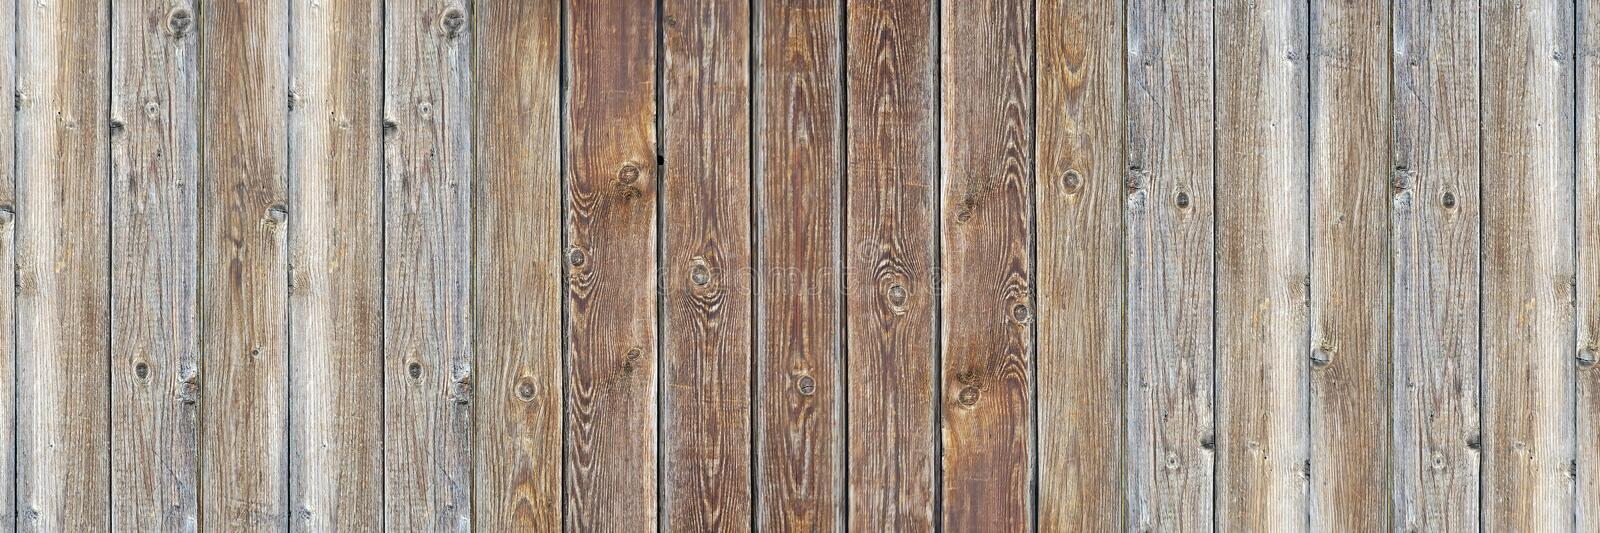 Background, wooden texture, old boards. royalty free stock image